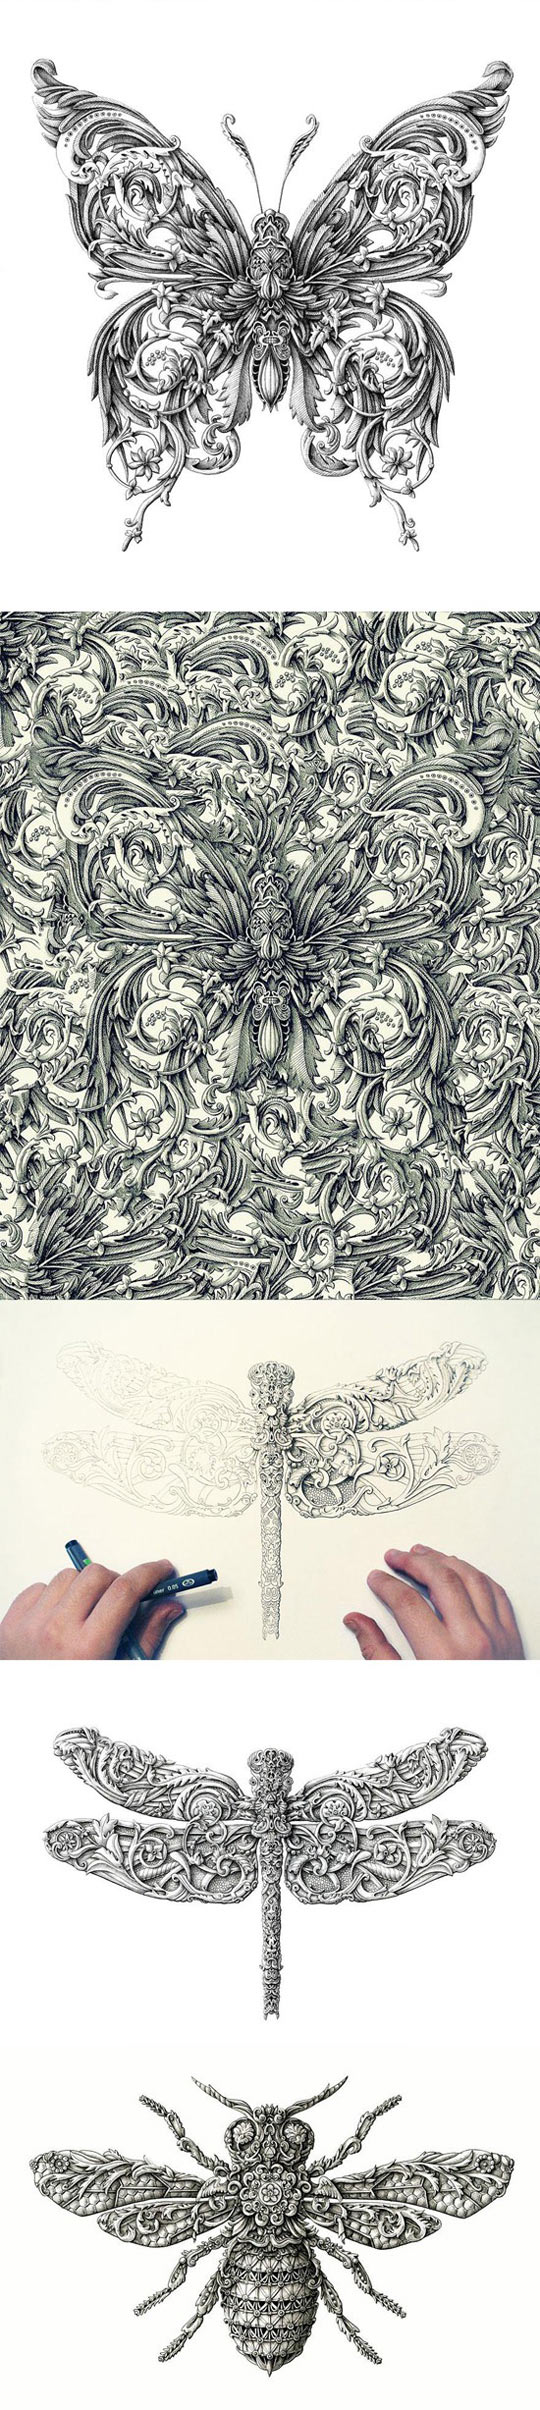 cool-bugs-drawings-paper-pen